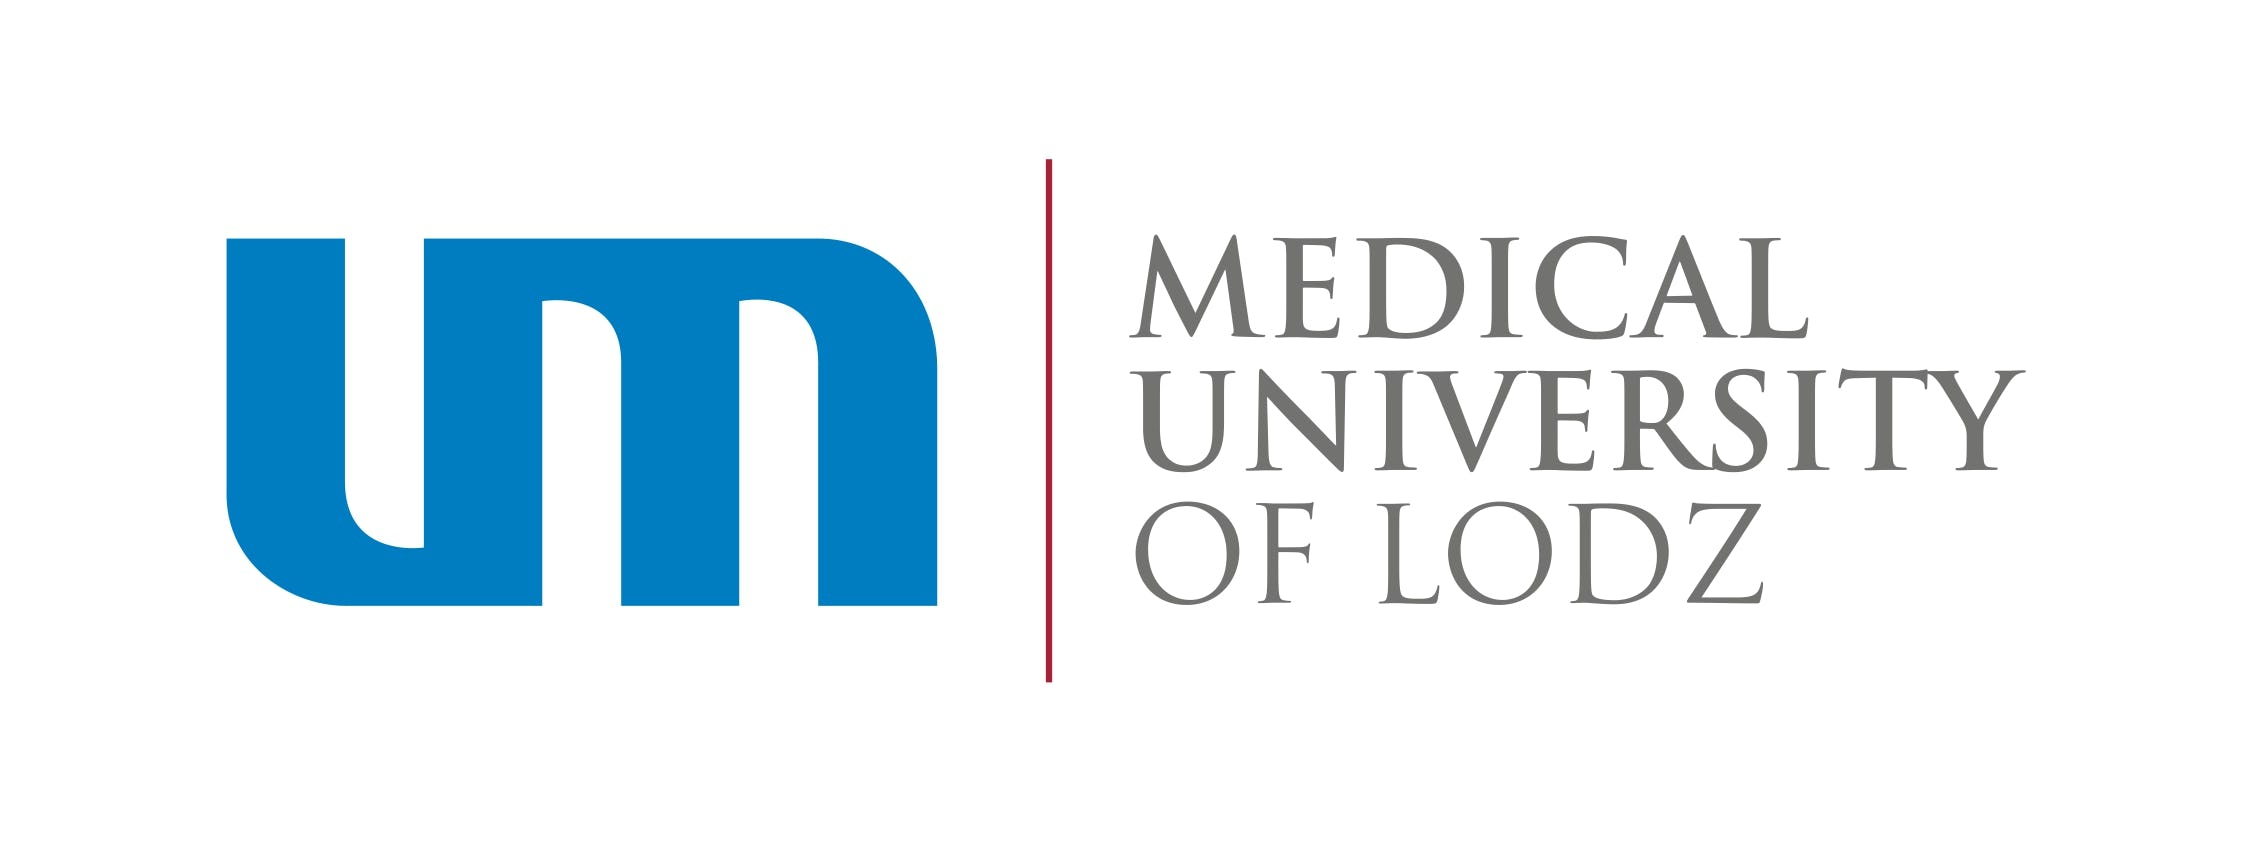 Medical University of Lodz Logo